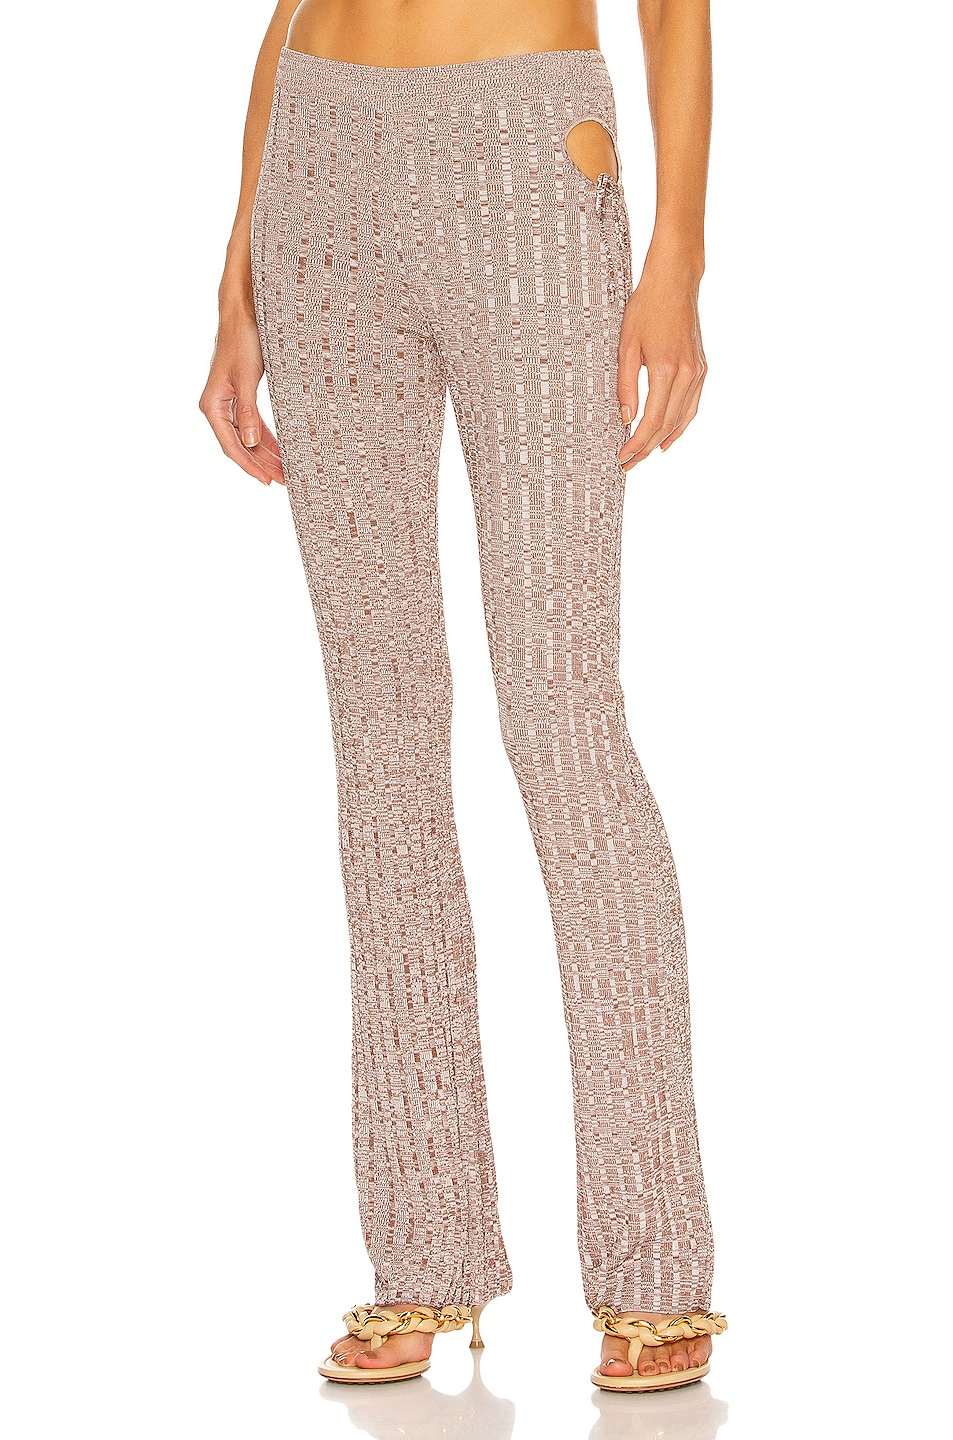 Image 1 of Aya Muse Emzar Knit Pant in Heather Brown